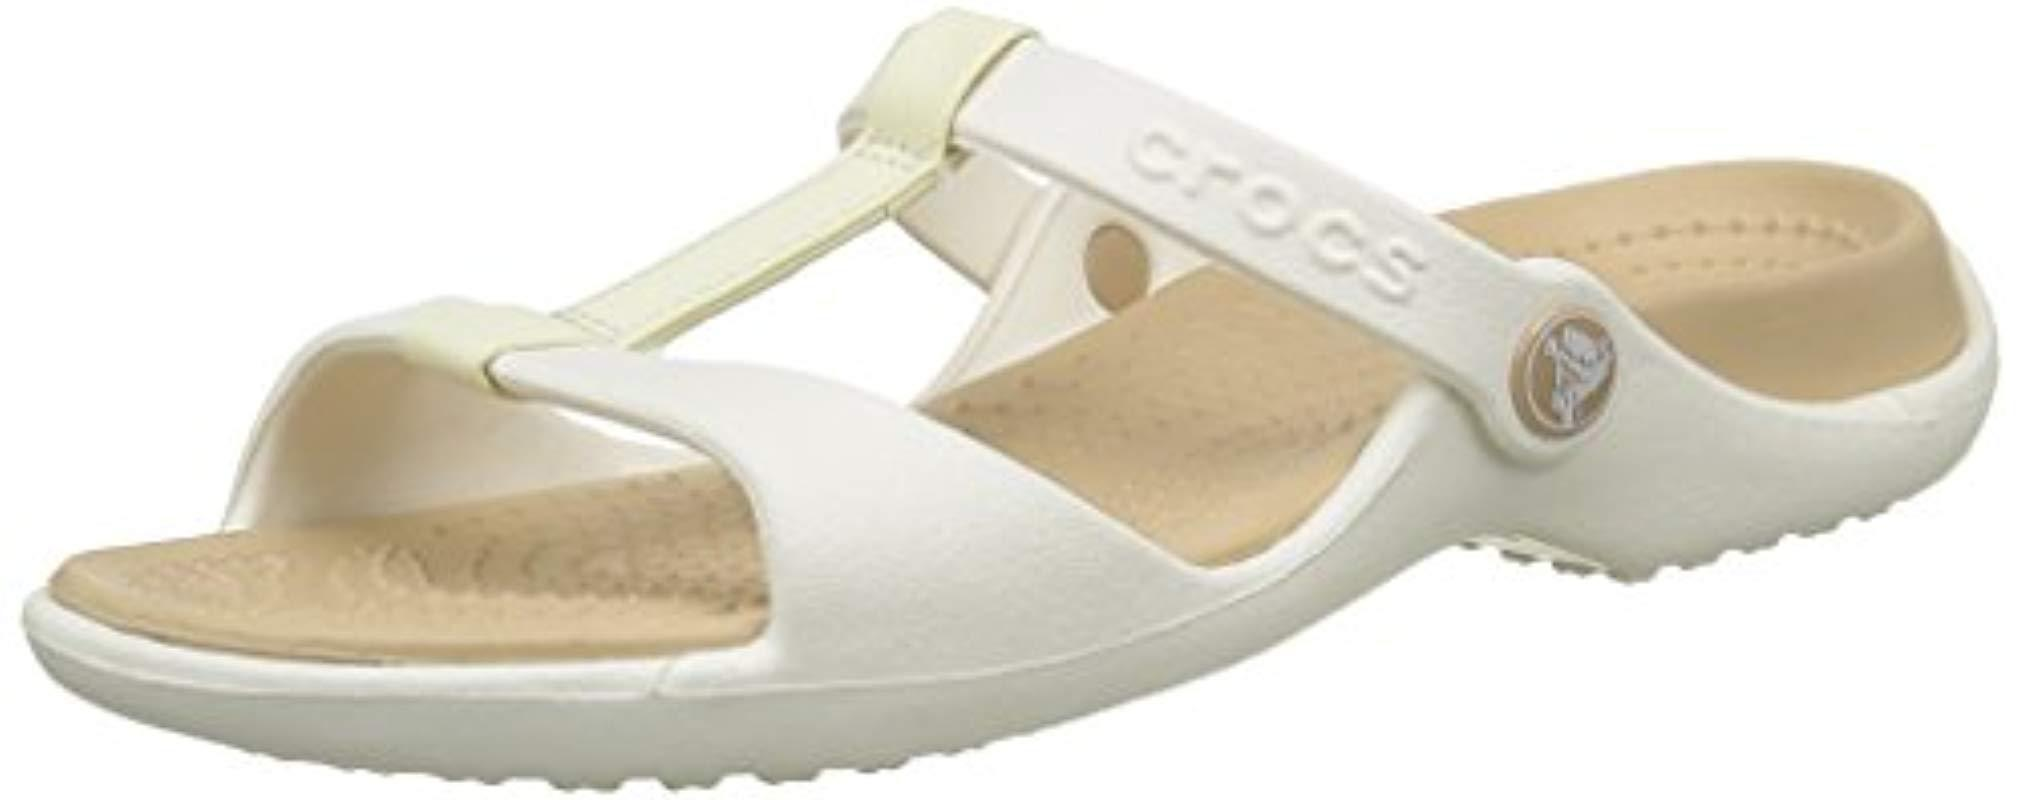 dab6f3bae40 Crocs™ Cleo Iii Sandals in White - Lyst